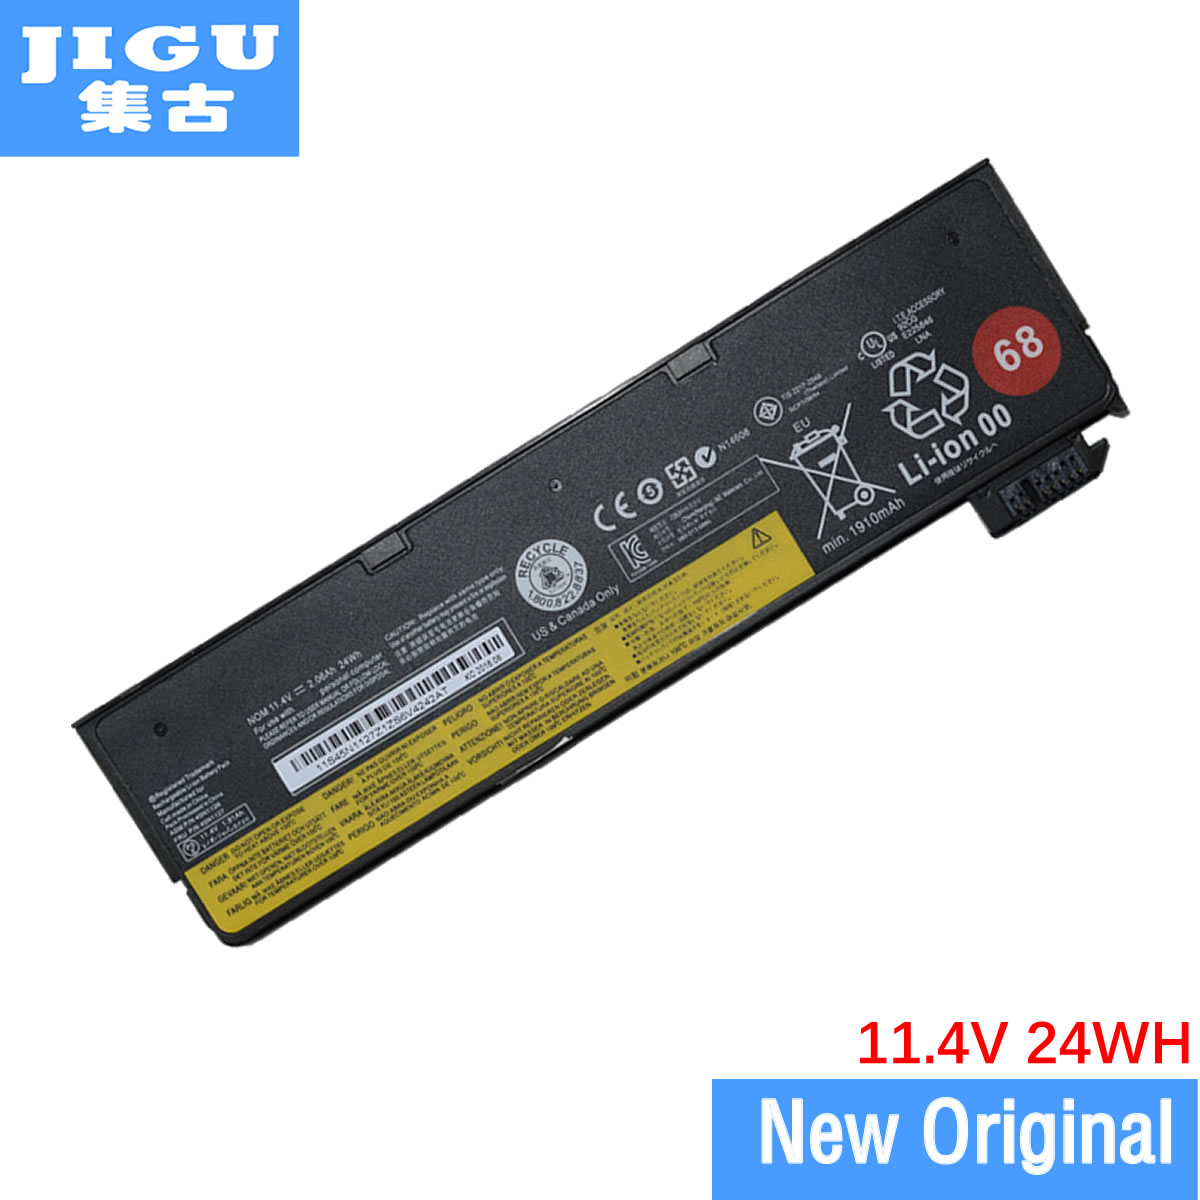 JIGU 11.4V 24WH 121500144 45N1108 45N1109 45N1110 45N1111 Original Laptop Battery For Lenovo K2450 S440 T440 T440S T450s X240 6 cell original laptop battery for t440s t440 x240 touch 45n1128 45n1129 10 8v 48wh